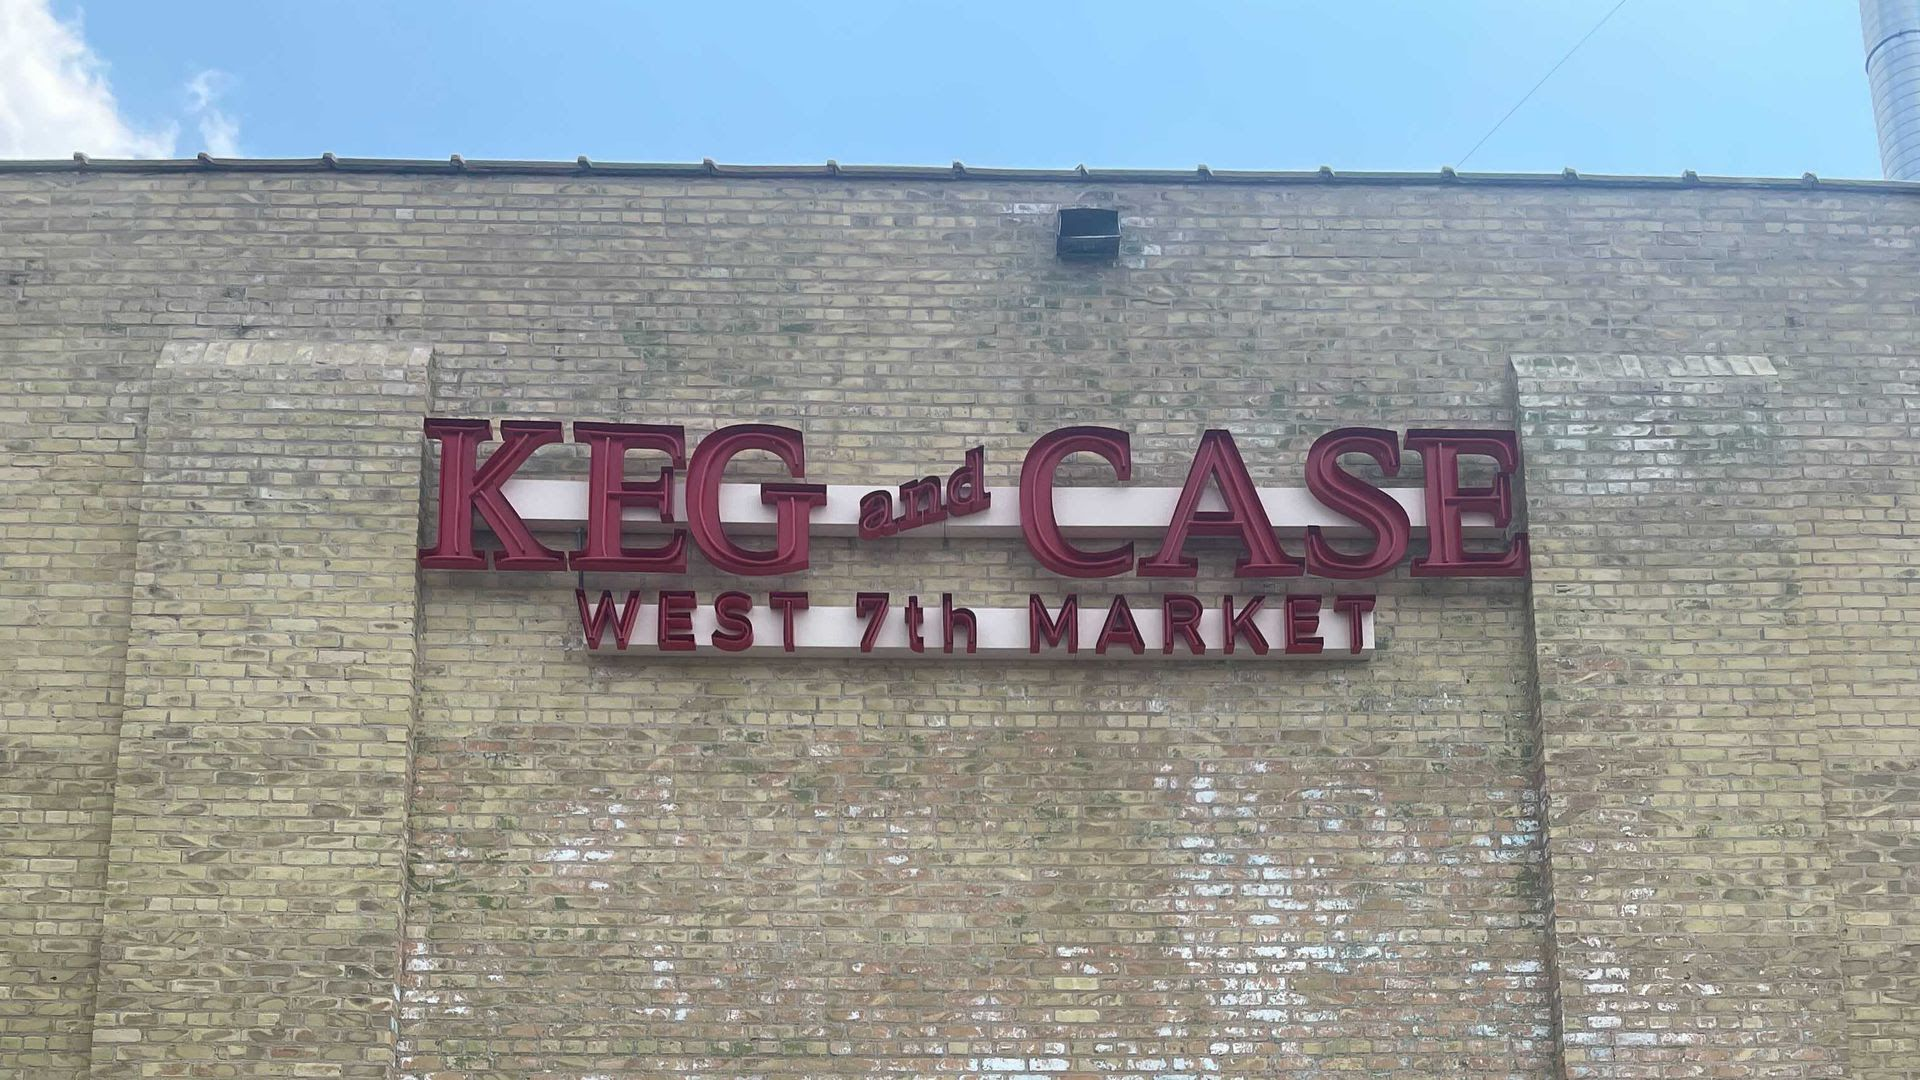 The signage on the side of St. Paul's Keg and Case West 7th Market.